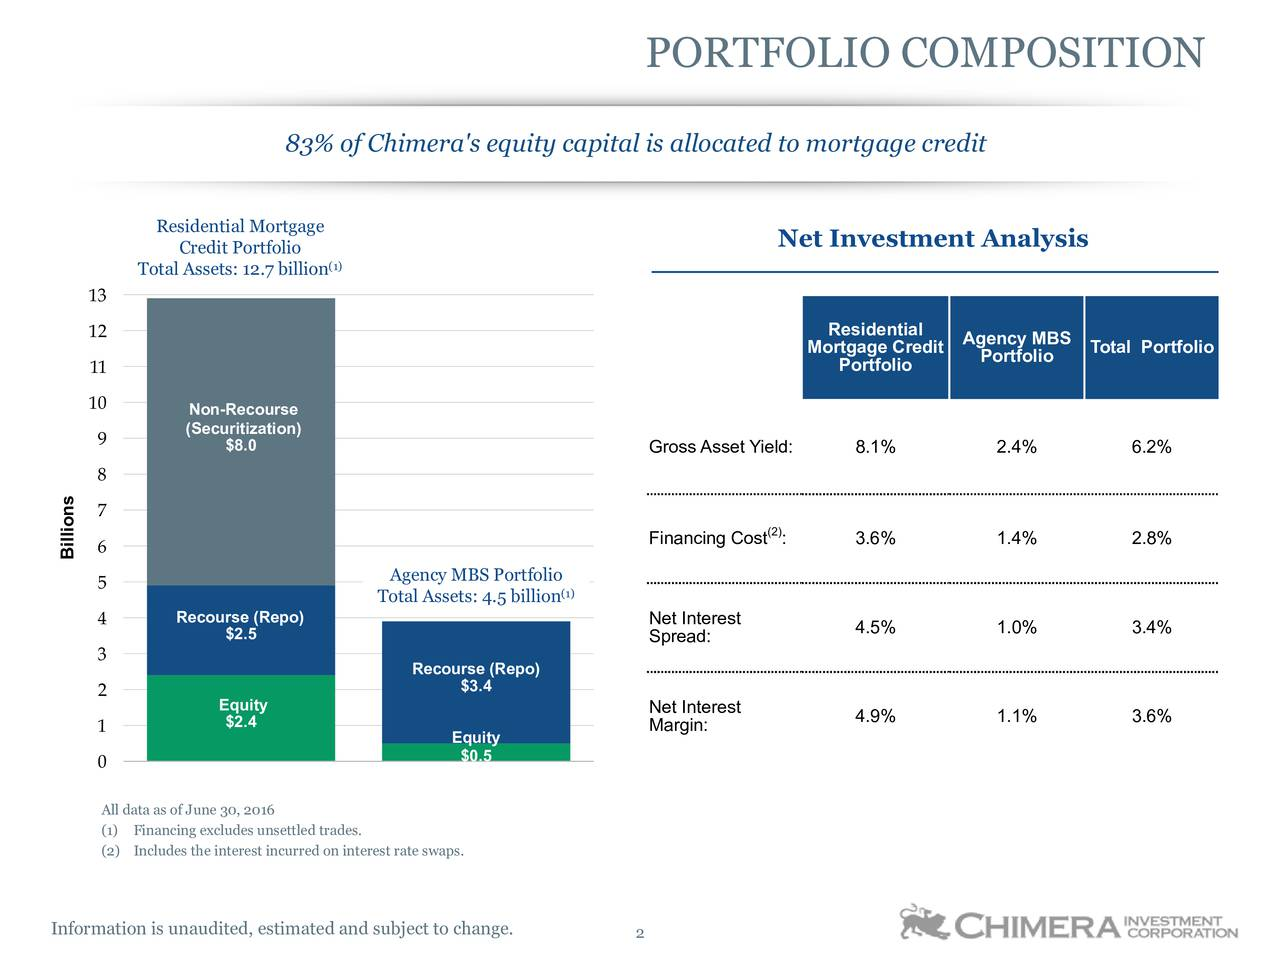 83% of Chimera's equity capital is allocated to mortgage credit Residential Mortgage Credit Portfolio Net Investment Analysis Total Assets: 12.7 billion 13 12 Residential Agency MBS Mortgage Credit Portfolio Total Portfolio 11 Portfolio 10 Non-Recourse (Securitization) 9 $8.0 Gross Asset Yield: 8.1% 2.4% 6.2% 8 s n 7 l (2) B 6 Financing Cost : 3.6% 1.4% 2.8% 5 Agency MBS Portfolio Total Assets: 4.5 billion 4 Recourse (Repo) Net Interest $2.5 Spread: 4.5% 1.0% 3.4% 3 Recourse (Repo) 2 $3.4 Equity Net Interest 1 $2.4 Margin: 4.9% 1.1% 3.6% Equity 0 $0.5 All data as of June30, 2016 (1) Financing excludes unsettled trades. (2) Includes the interest incurred on interest rate swaps. Information is unaudited, estimated and subject to change. 2